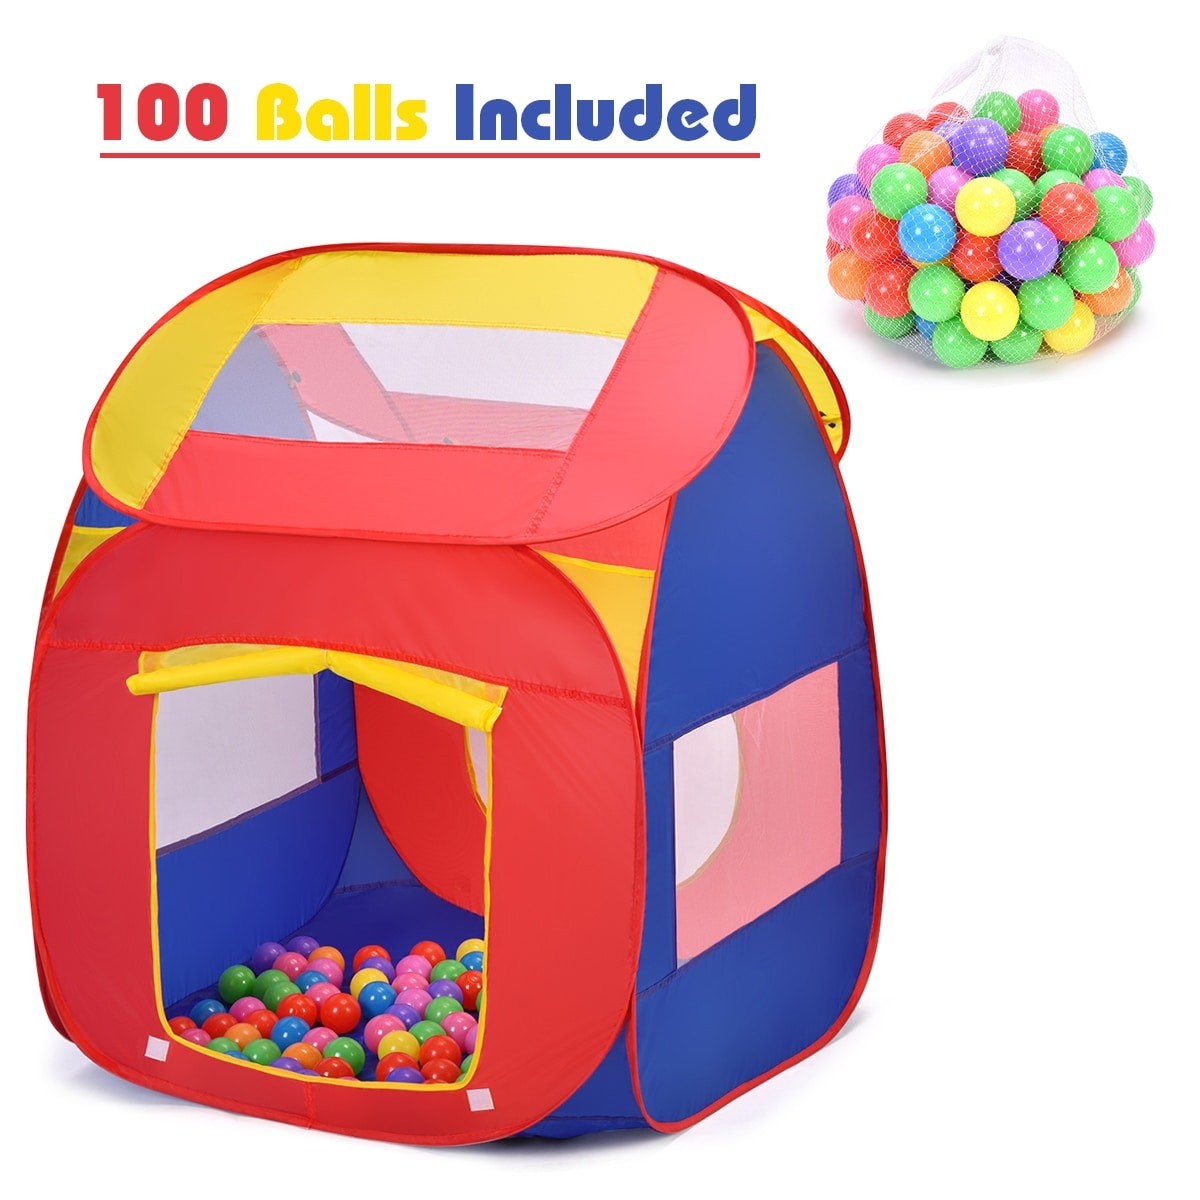 CubbyTime Fabric Play House Girls and Boys Fabric Tent Portable Play Based Learning Play House Washable Imaginative Play Foldable Kids Play Tent for Kids Indoor or Outdoor Canvas Children Fort